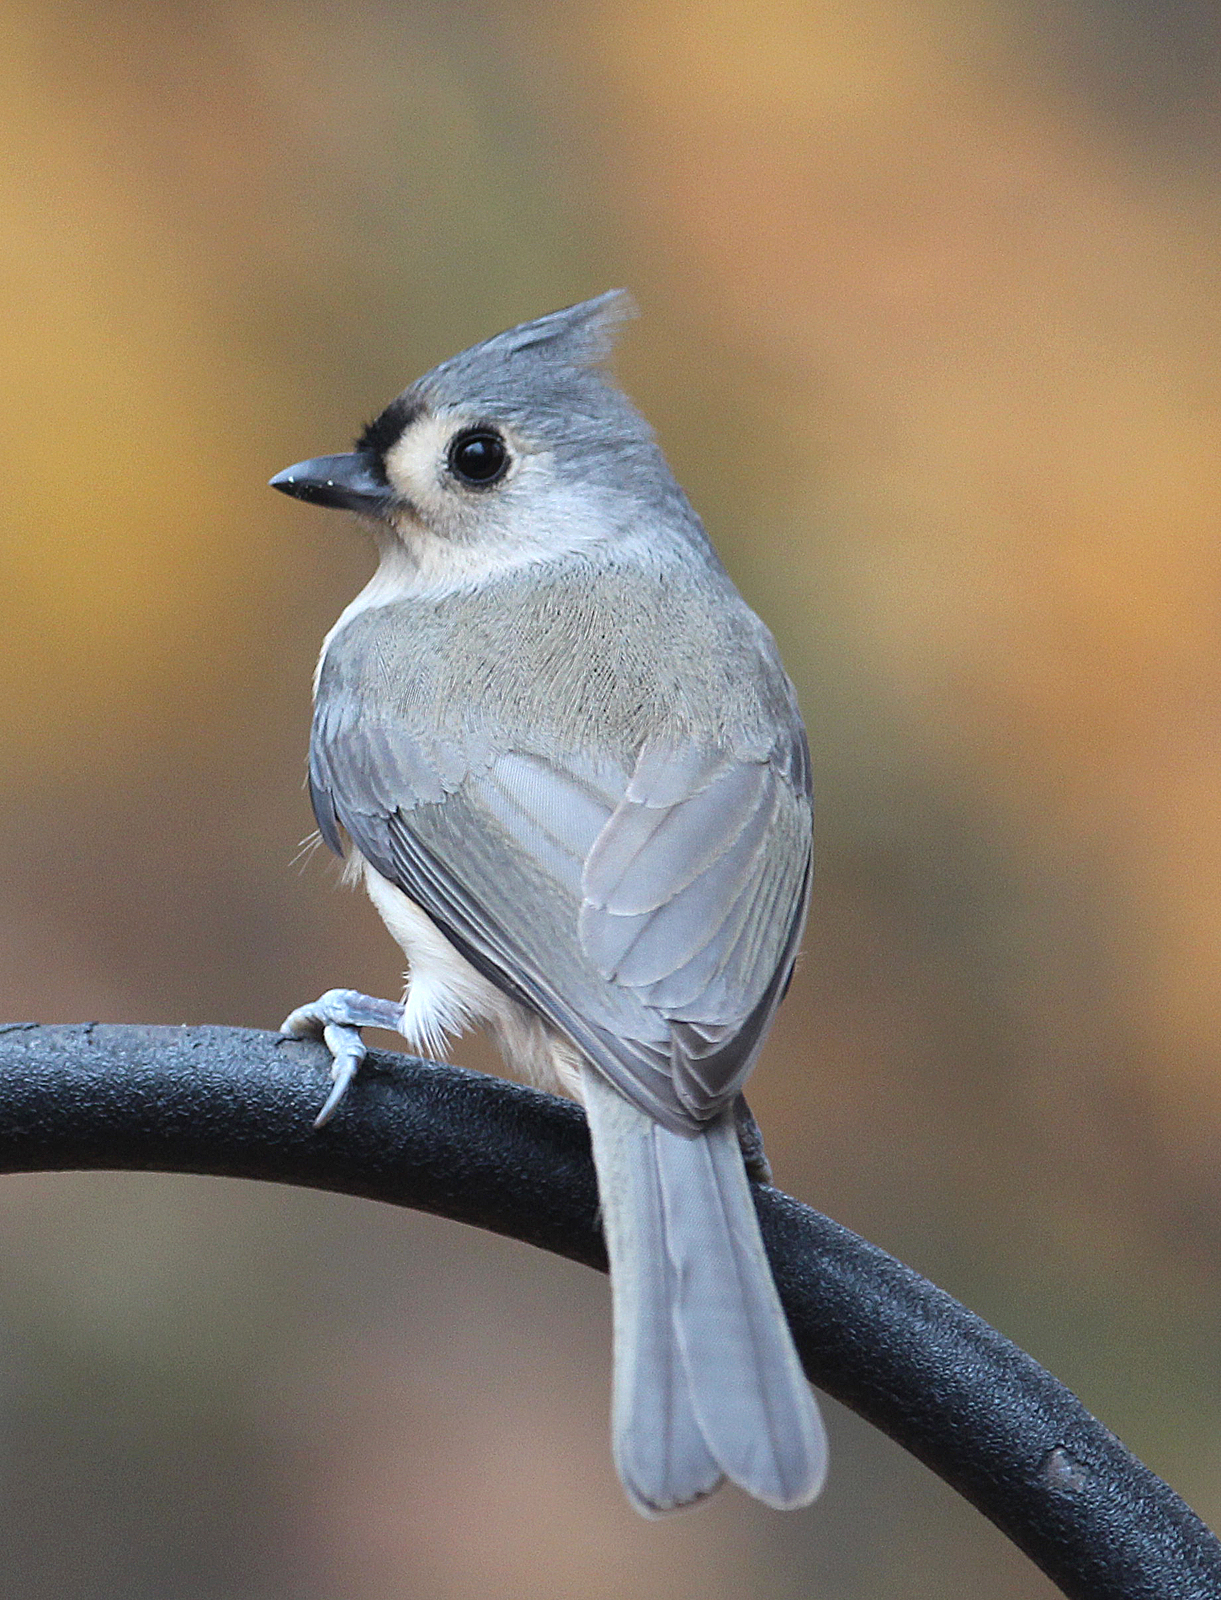 Photo by Chris Bosak A Tufted Timouse perches near a feeding station in New England, fall 2015.